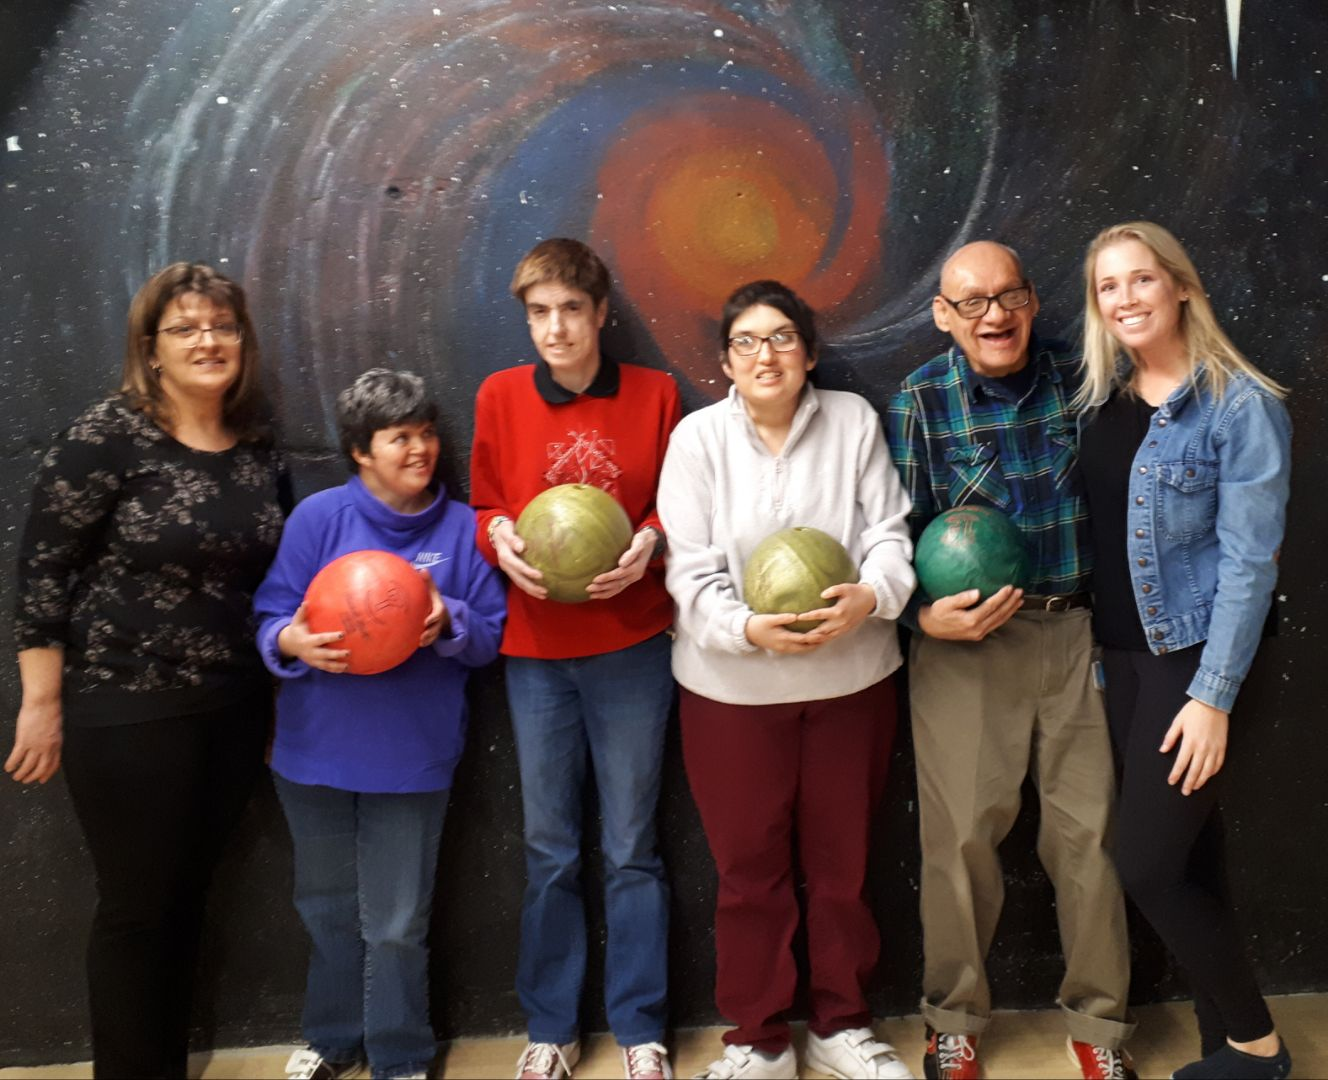 Don, Laura, Lindsey, Susan Bowling March 2019